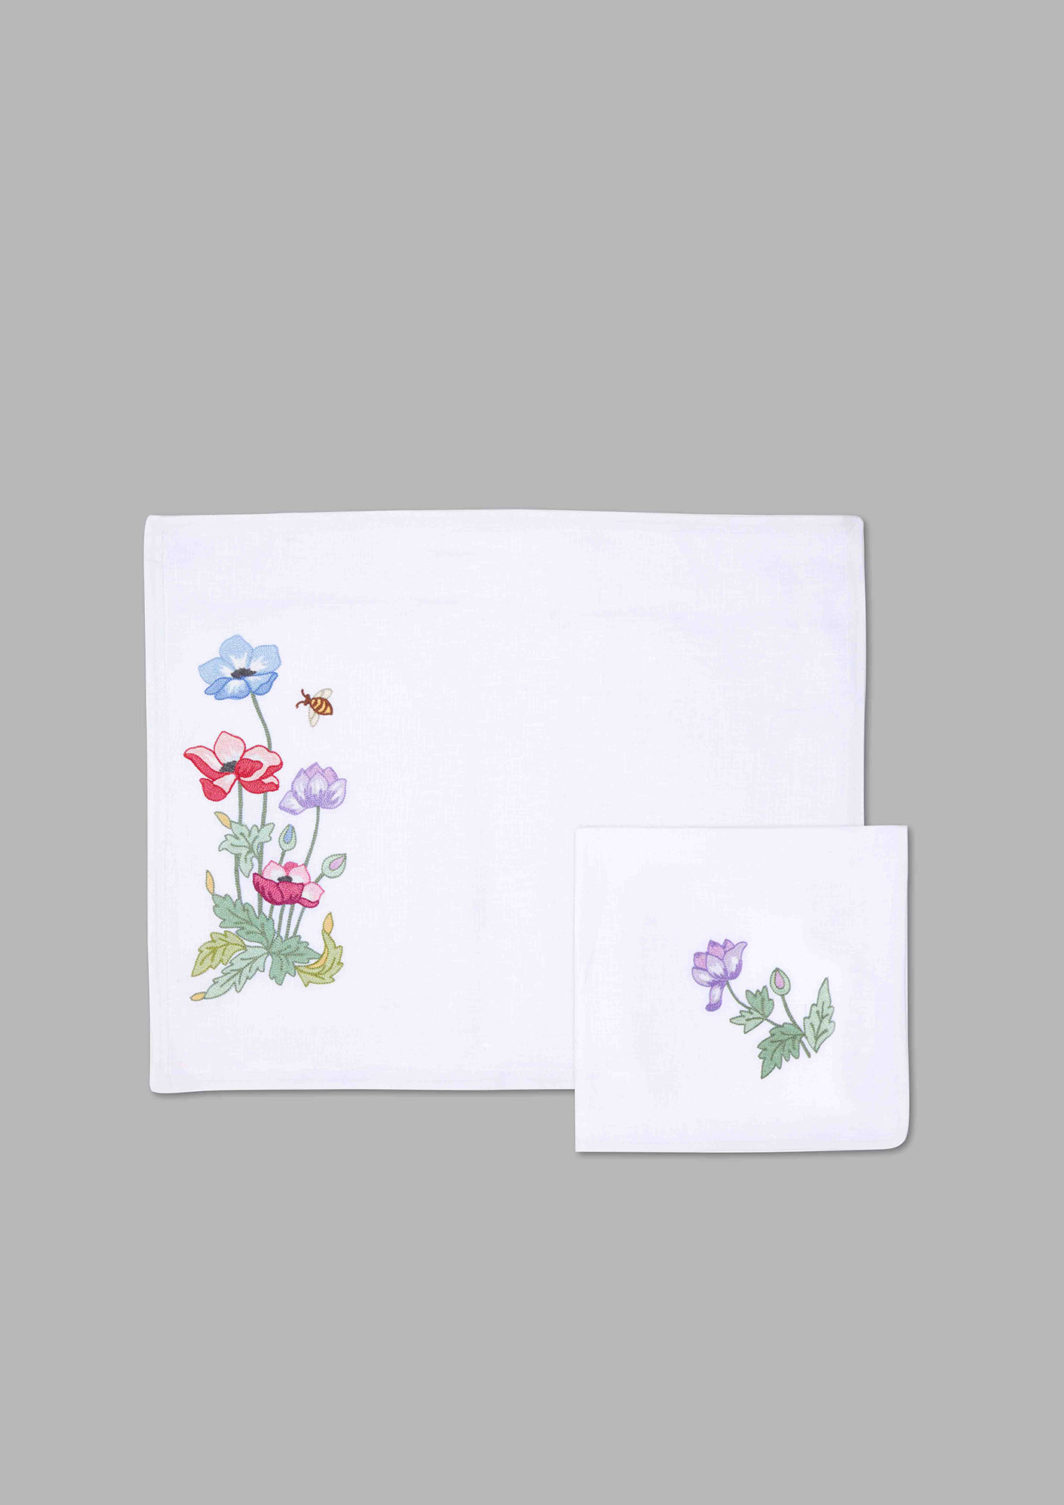 SPRING FLOWERS PLACEMAT SET OF 2